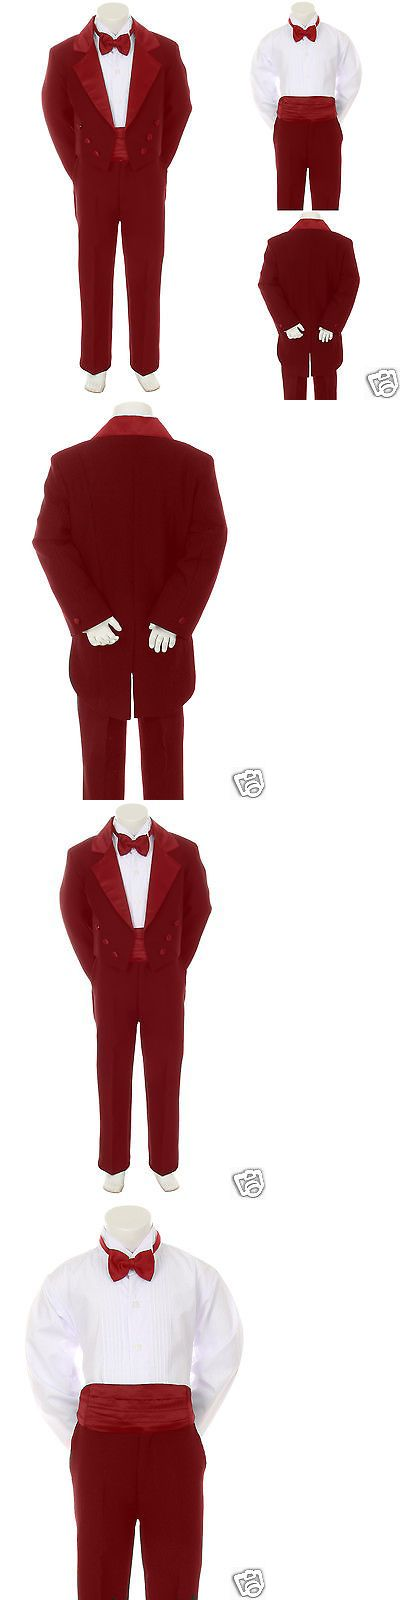 Suits 147337: Baby Infant Toddler Boy Burgundy Bow Tie Wedding Formal Tail Tuxedo Suit Sz S-4T -> BUY IT NOW ONLY: $64.99 on eBay!